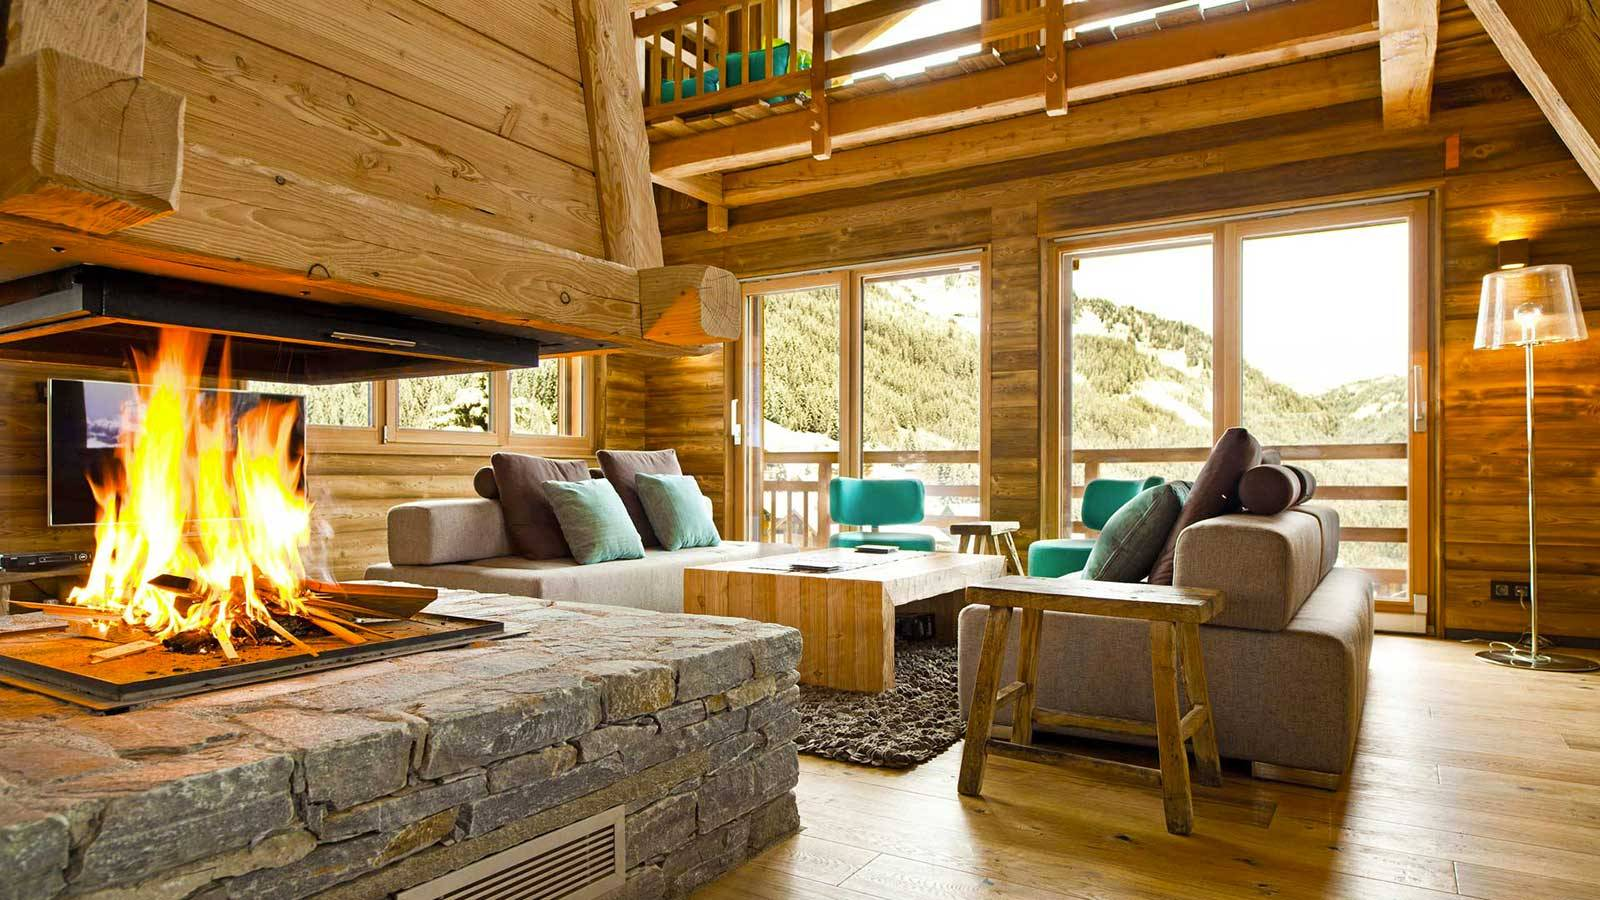 Emejing chalet en bois interieur gallery design trends for Decoration maison interieur